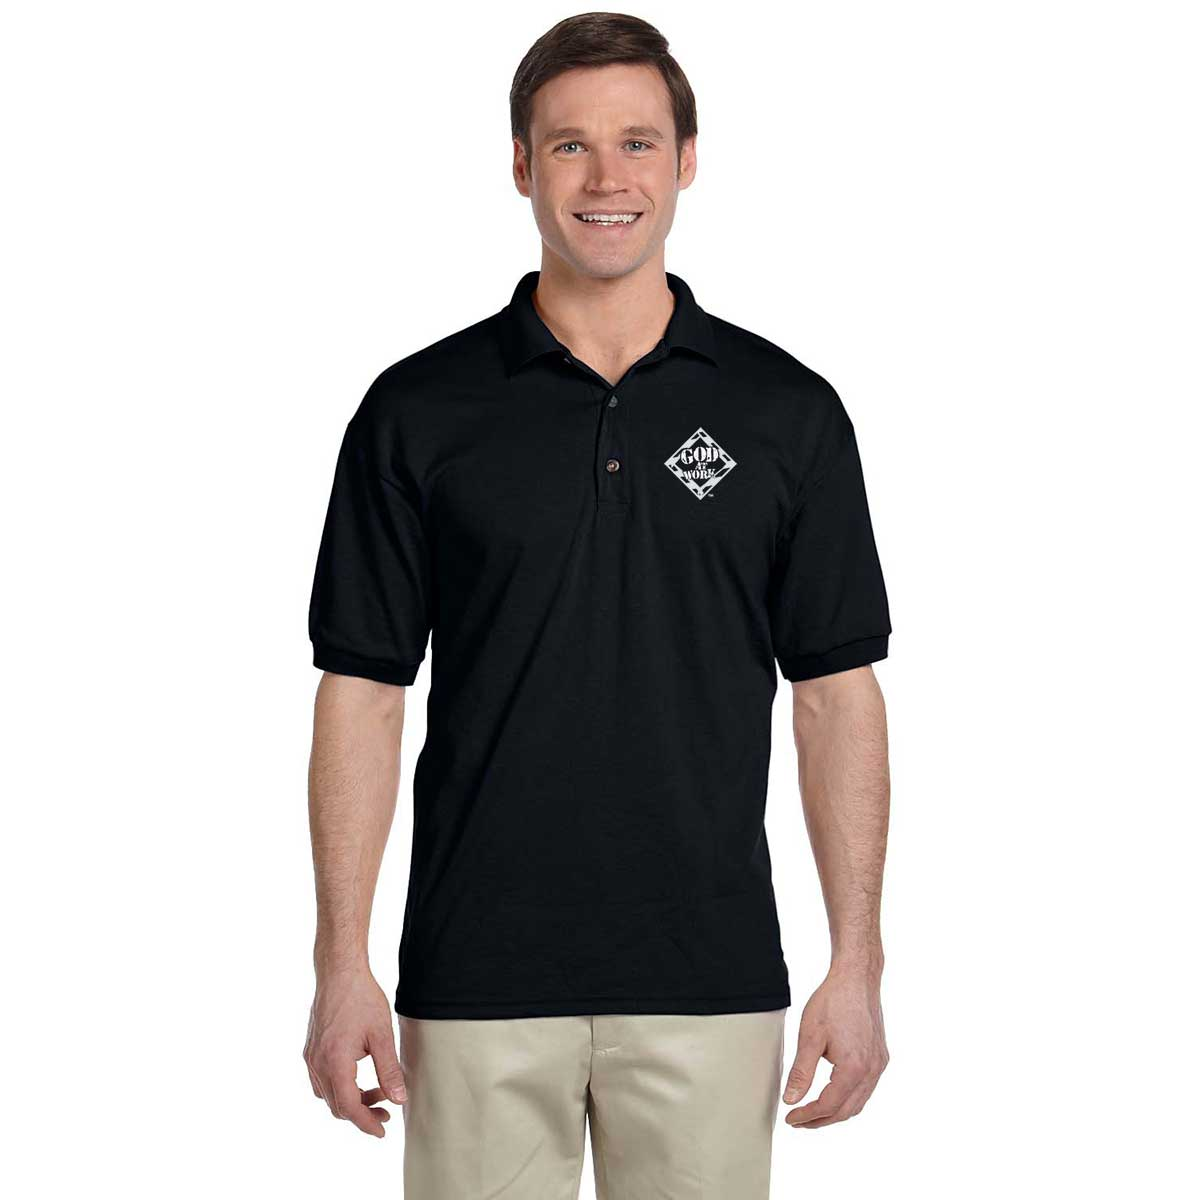 God At Work Embroidered Short Sleeve Polo Black